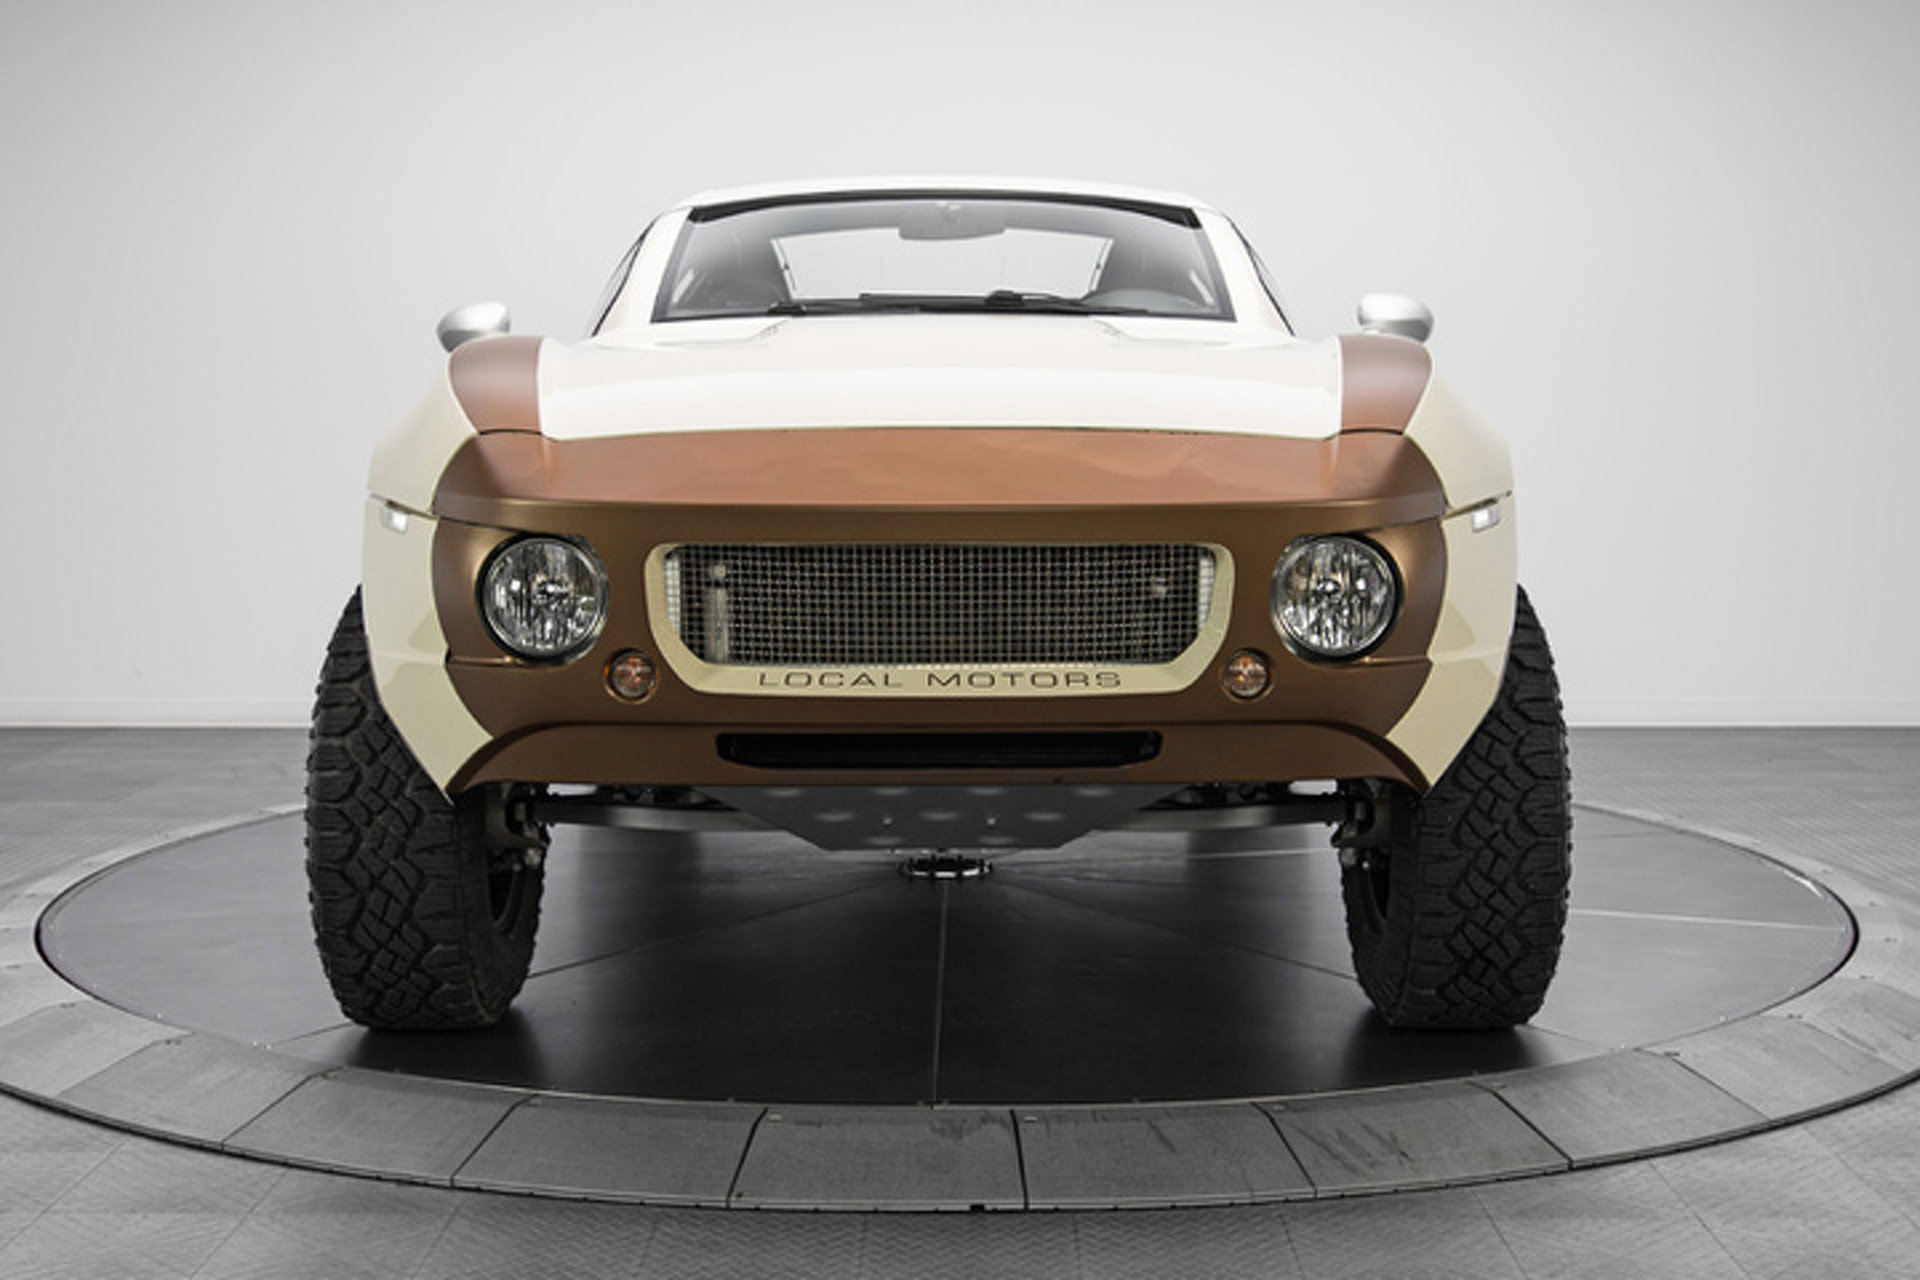 Up for Sale: Ray Evernham's Rally Fighter